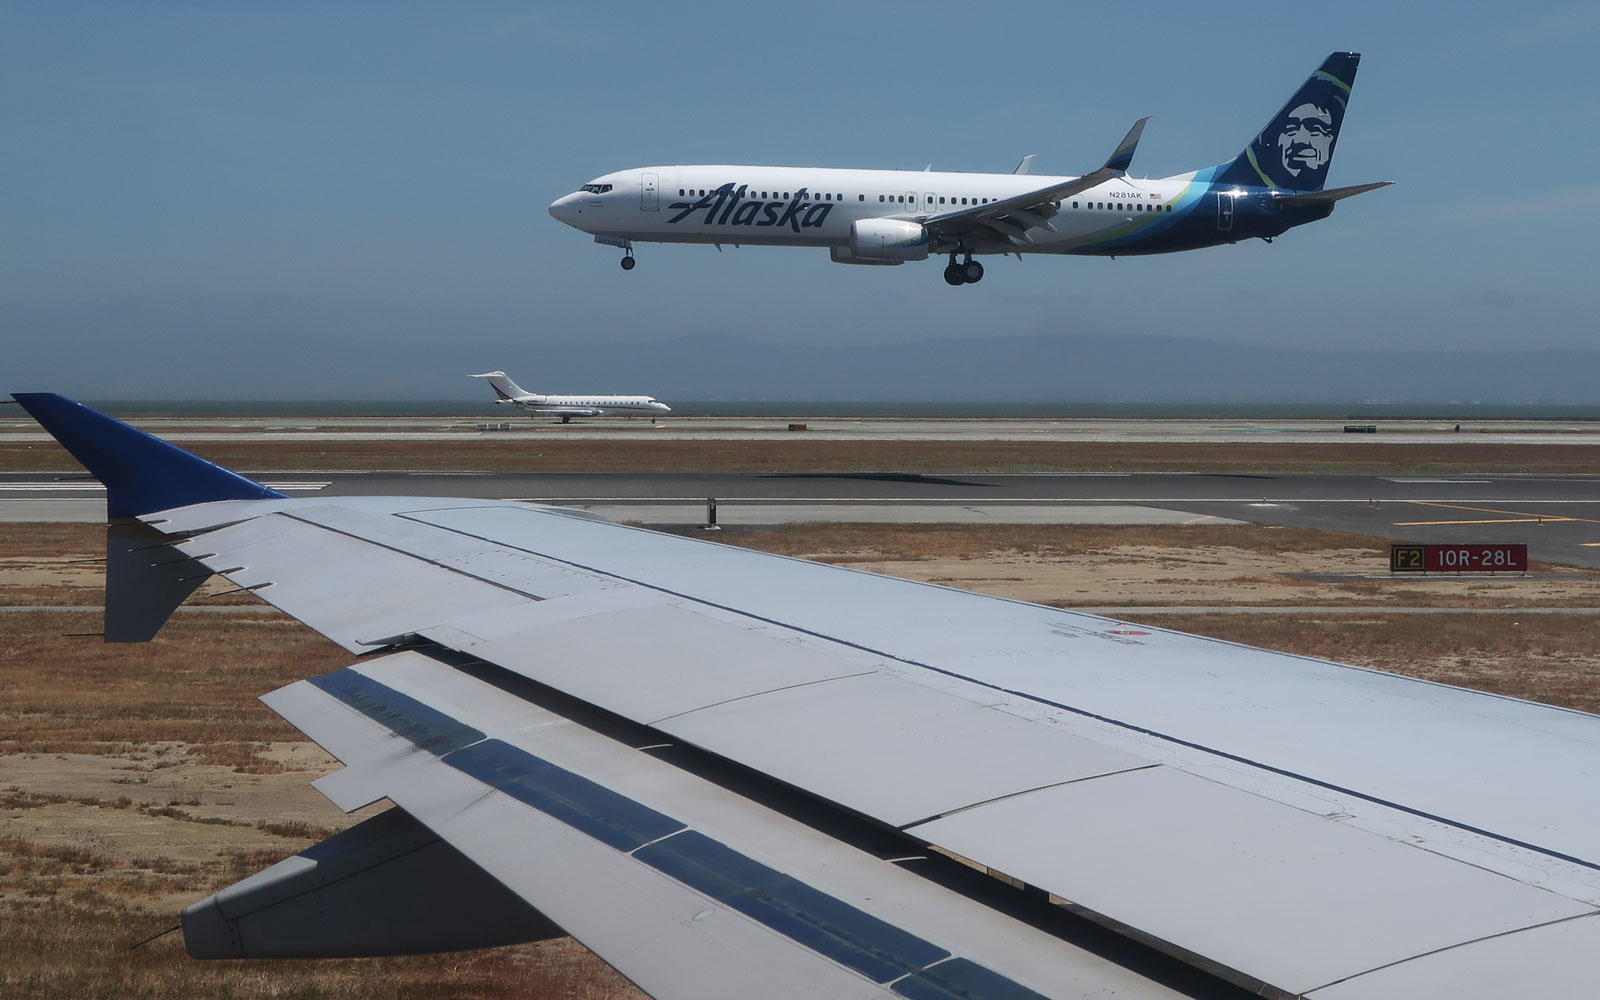 An Alaska Airlines aircraft takes to the skies.